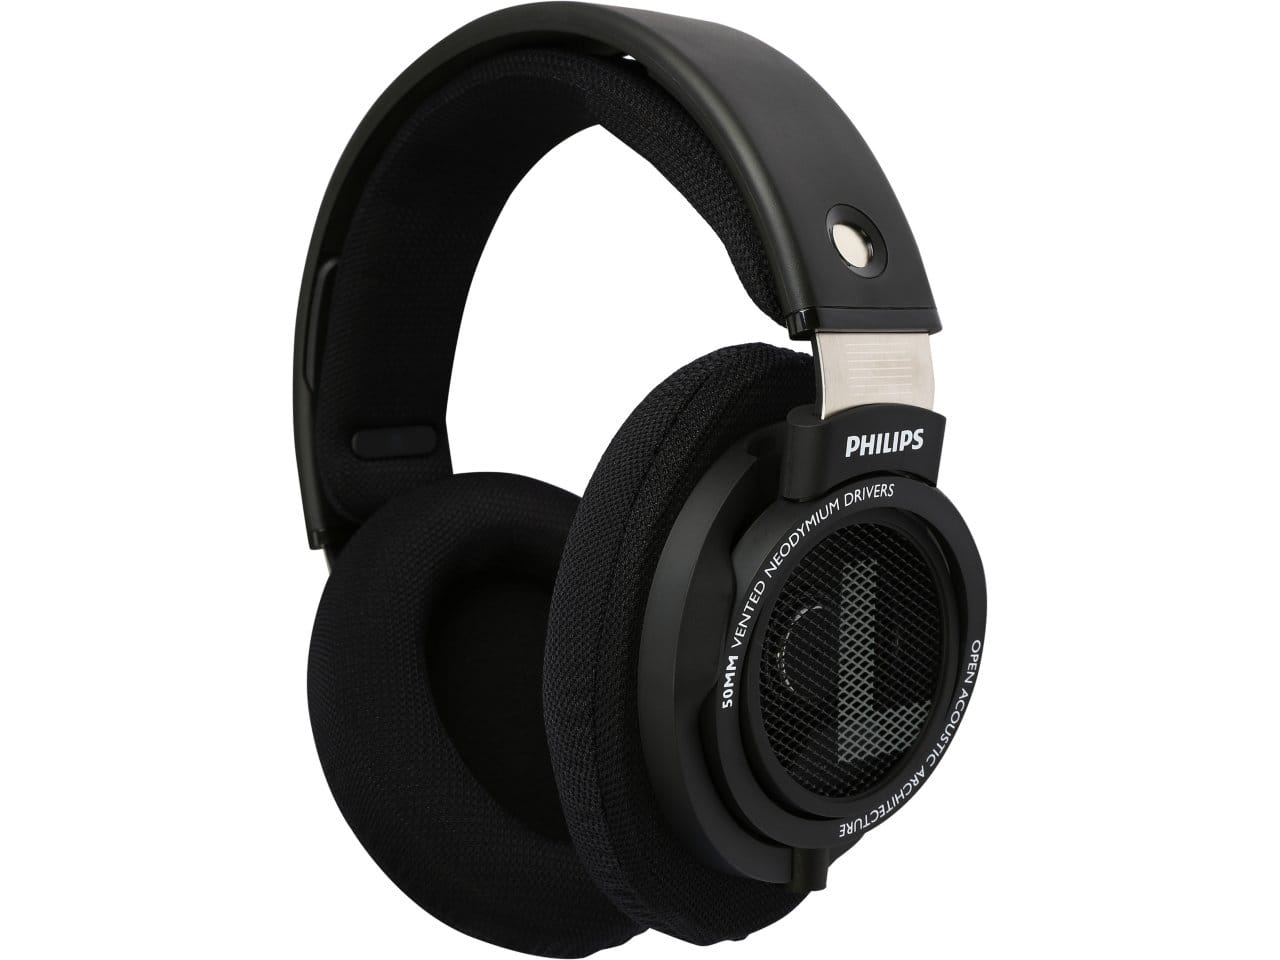 Philips SHP9500 Over-Ear Headphone Exclusive - Black $59.99 fs @ nf